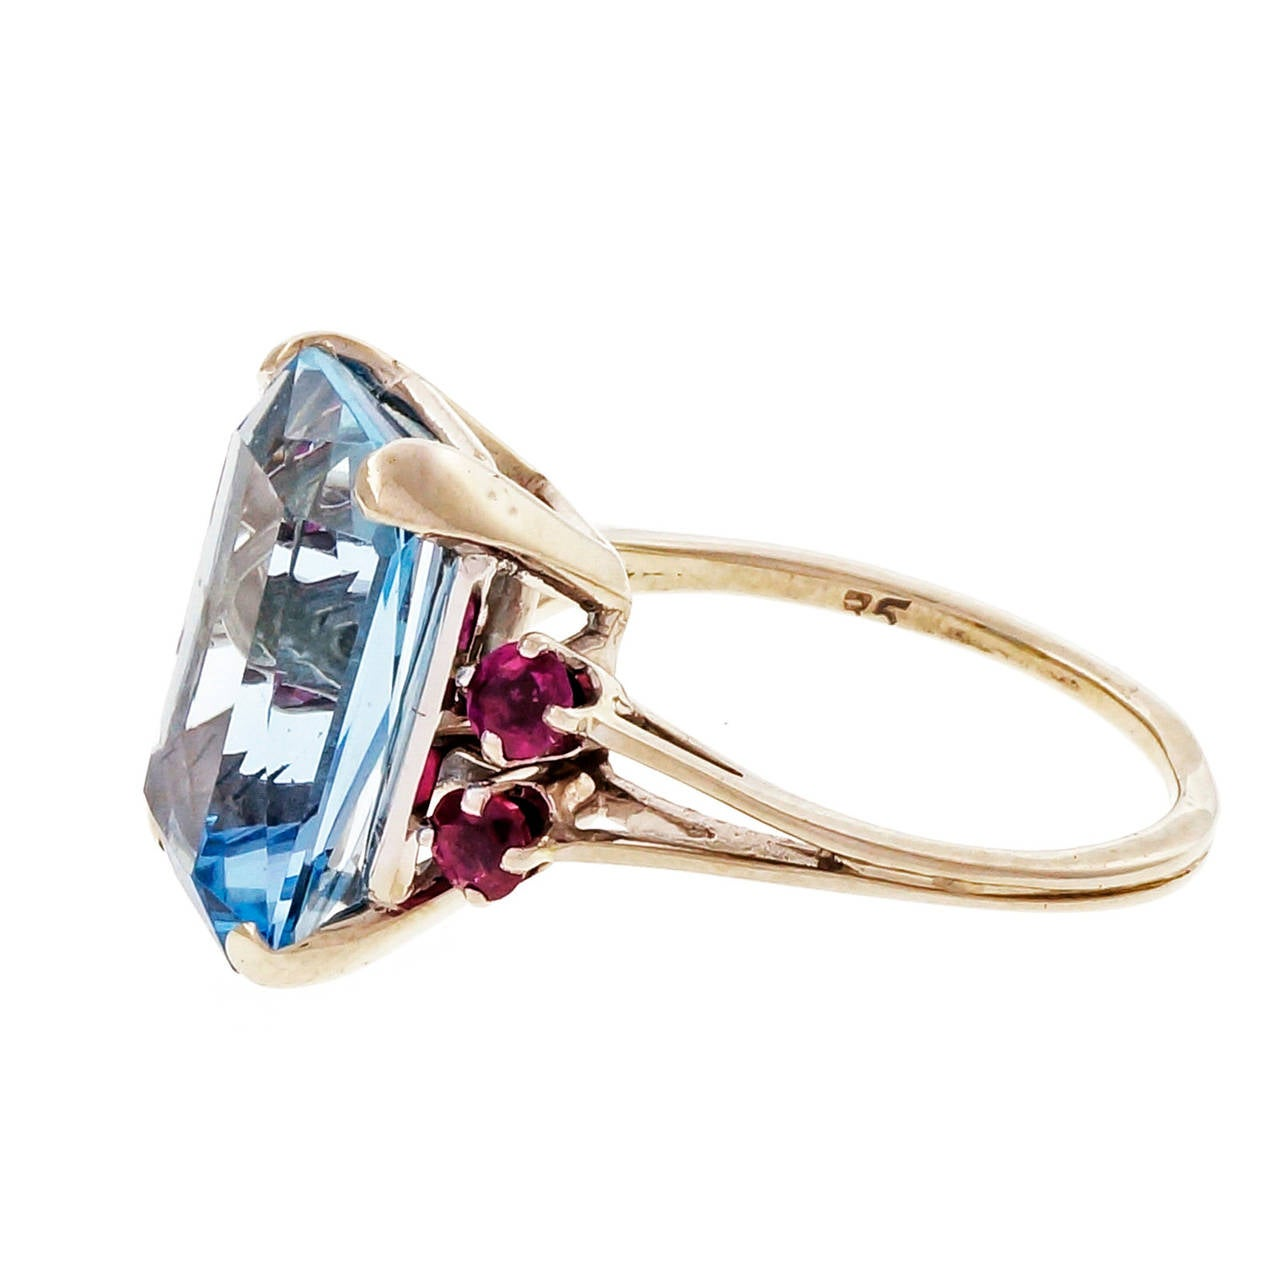 Aquamarine Ruby Gold Cocktail Ring In Good Condition For Sale In Stamford, CT